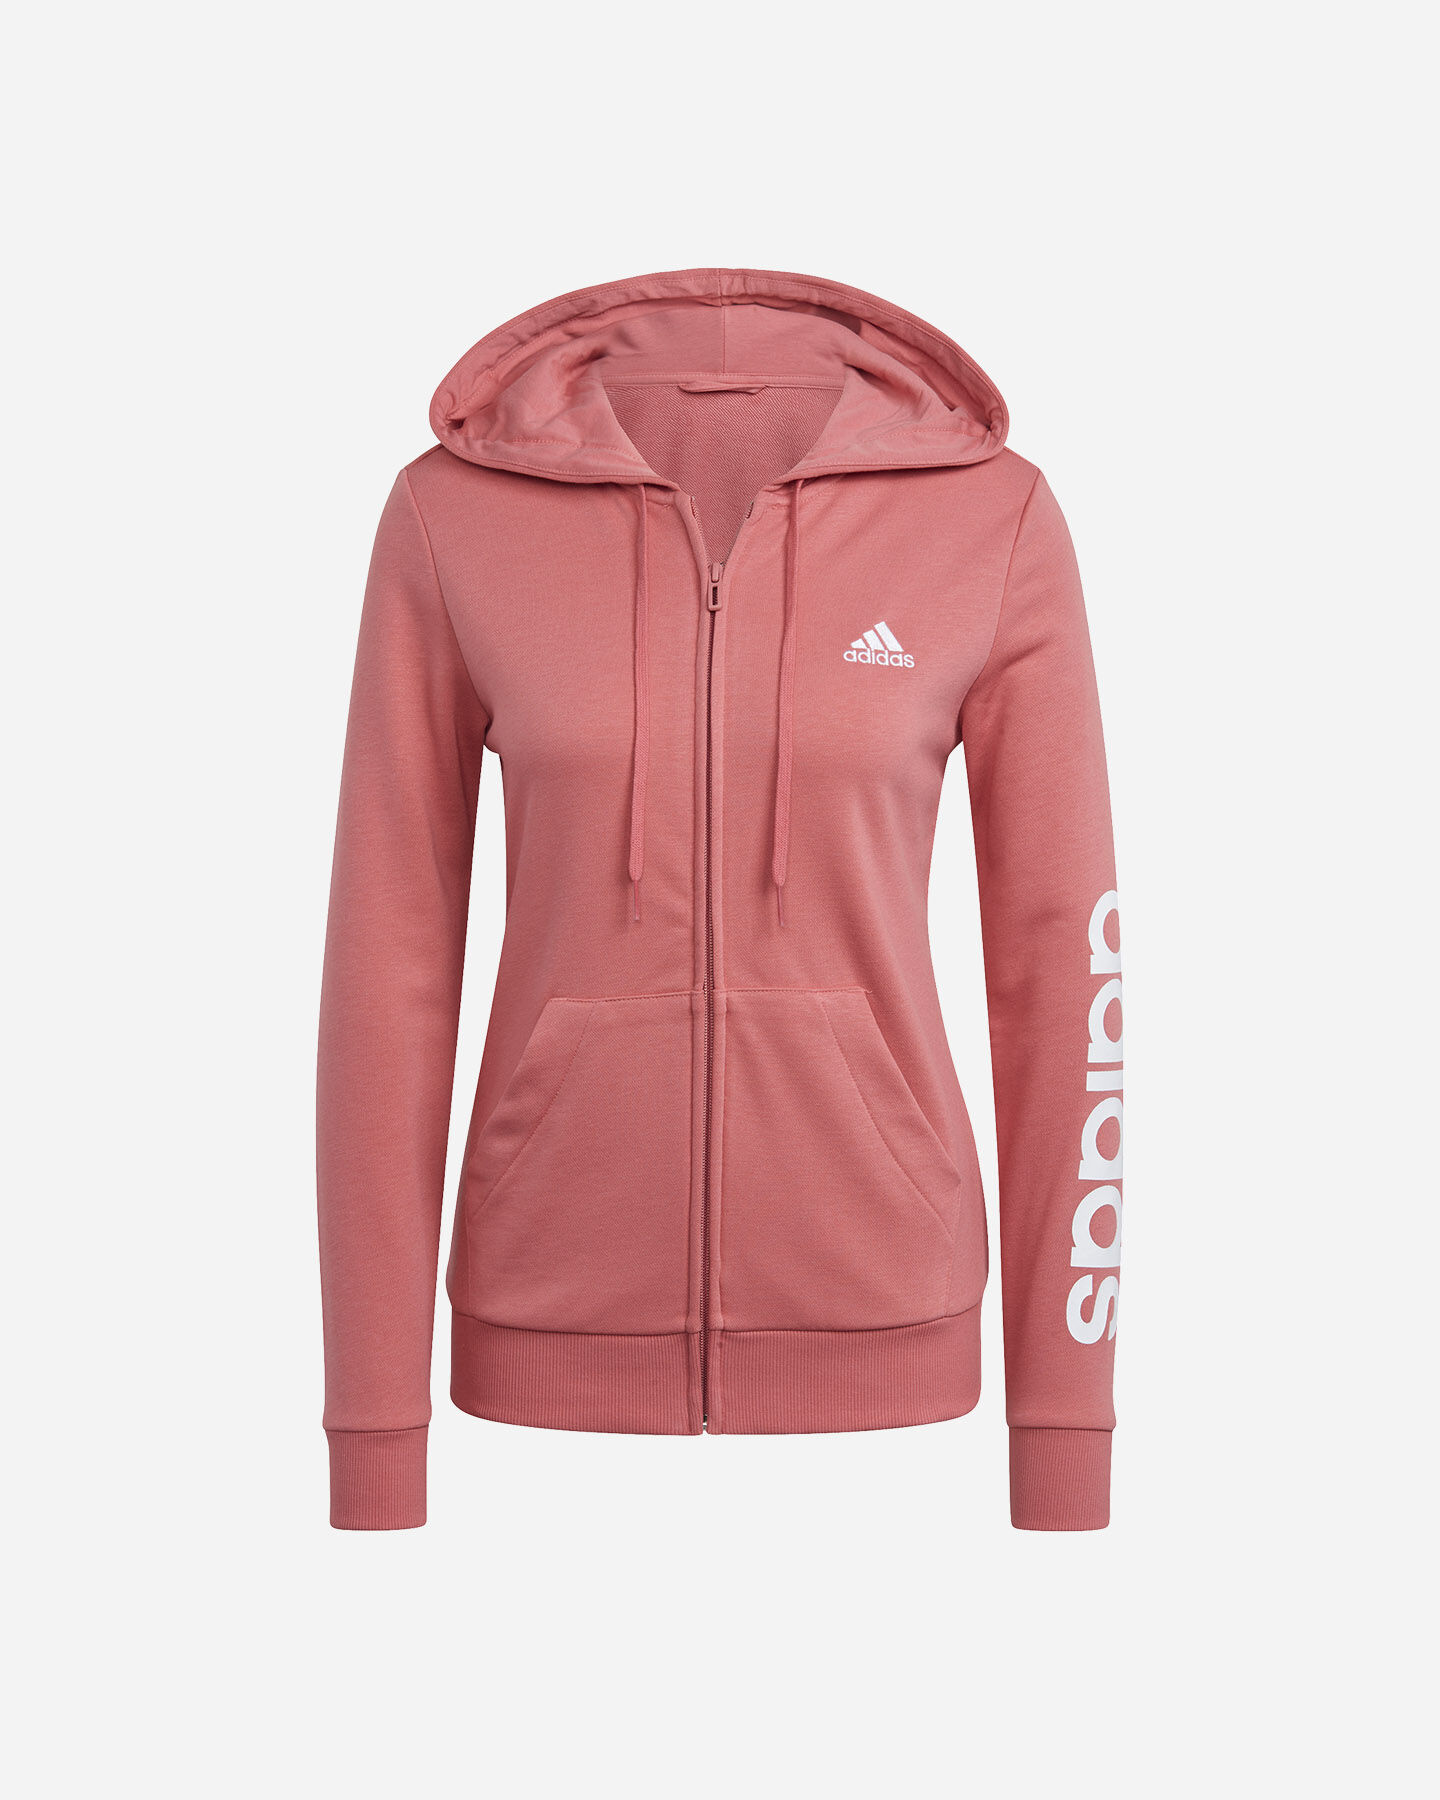 Felpa ADIDAS BIG LOGO W S5274710 scatto 0